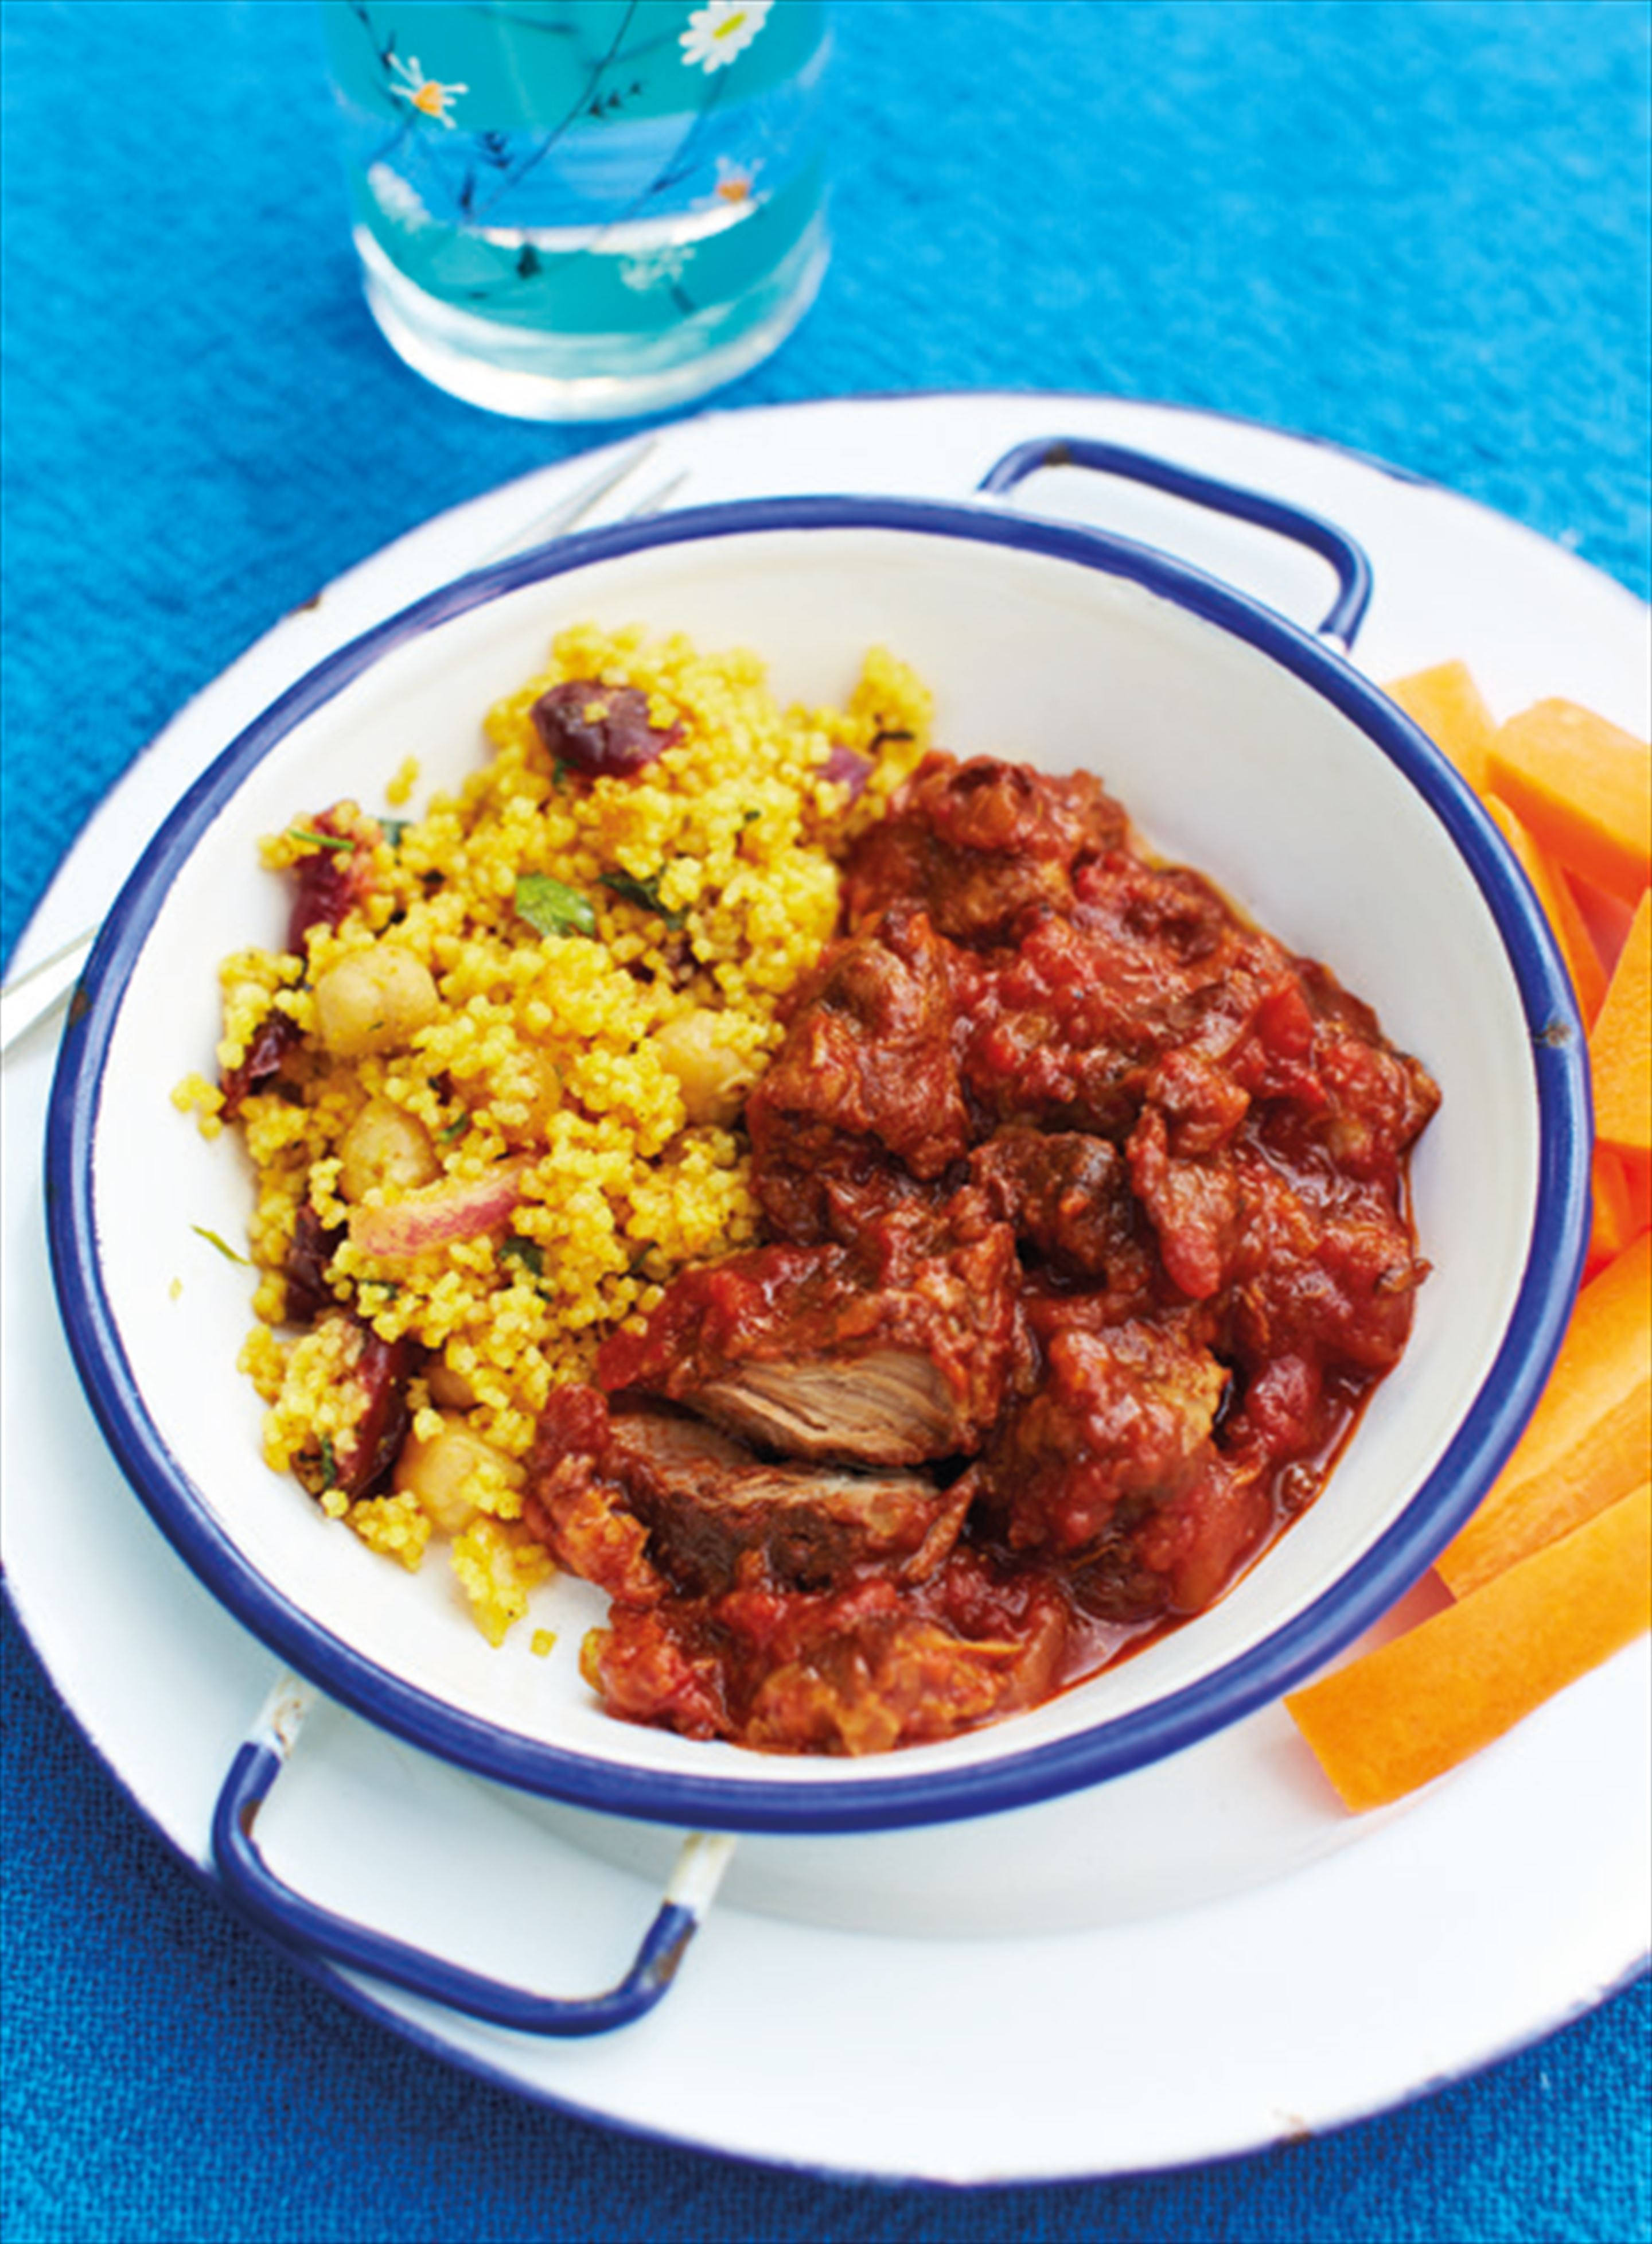 A sweet and melting inauthentic lamb tagine